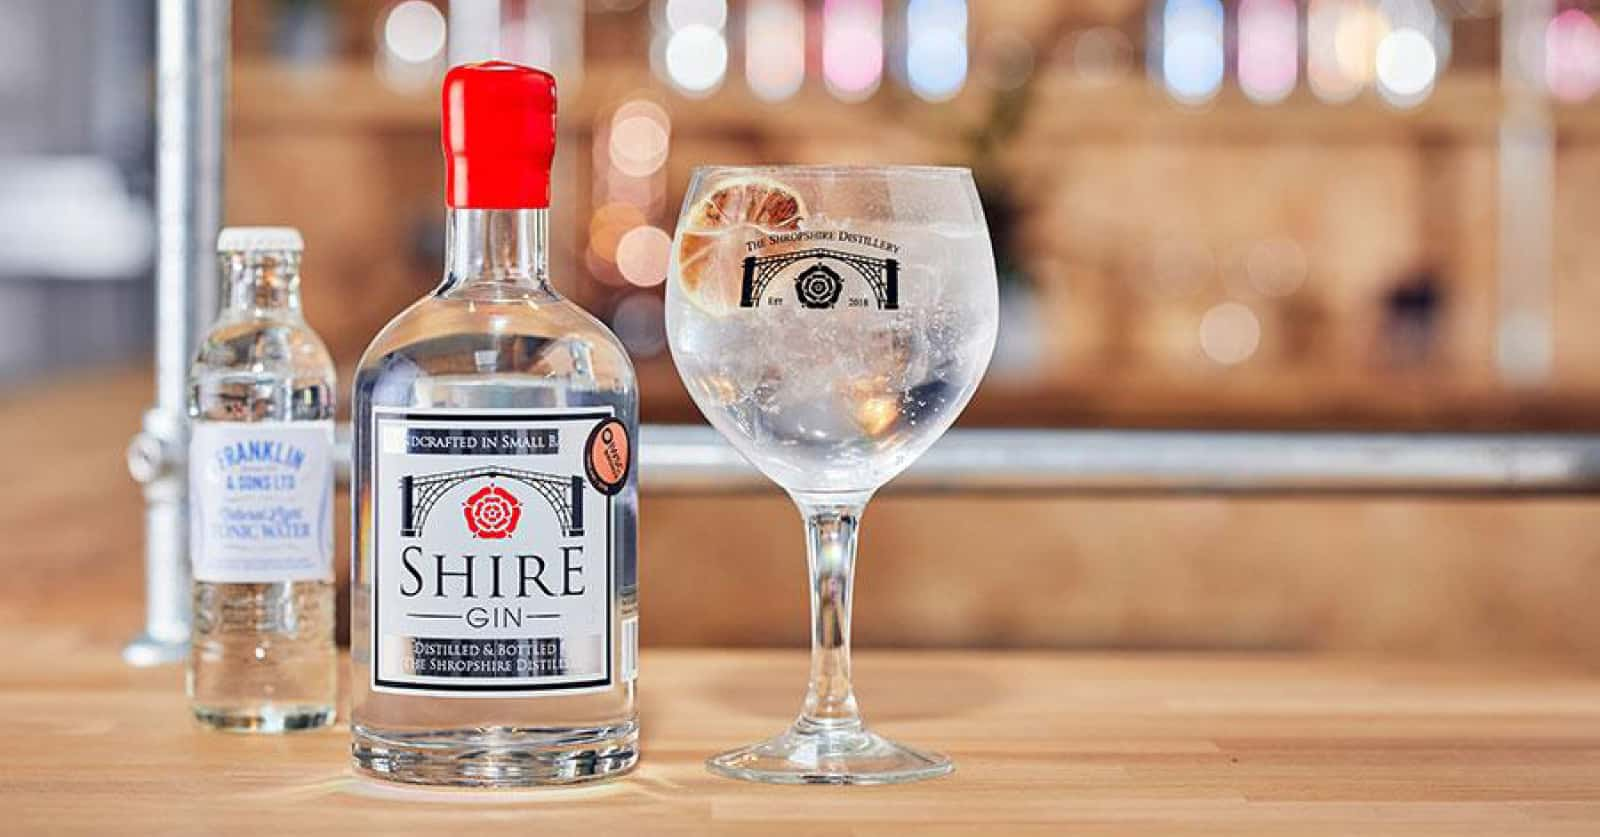 Shropshire Gin Sustainable Bottle Packaging